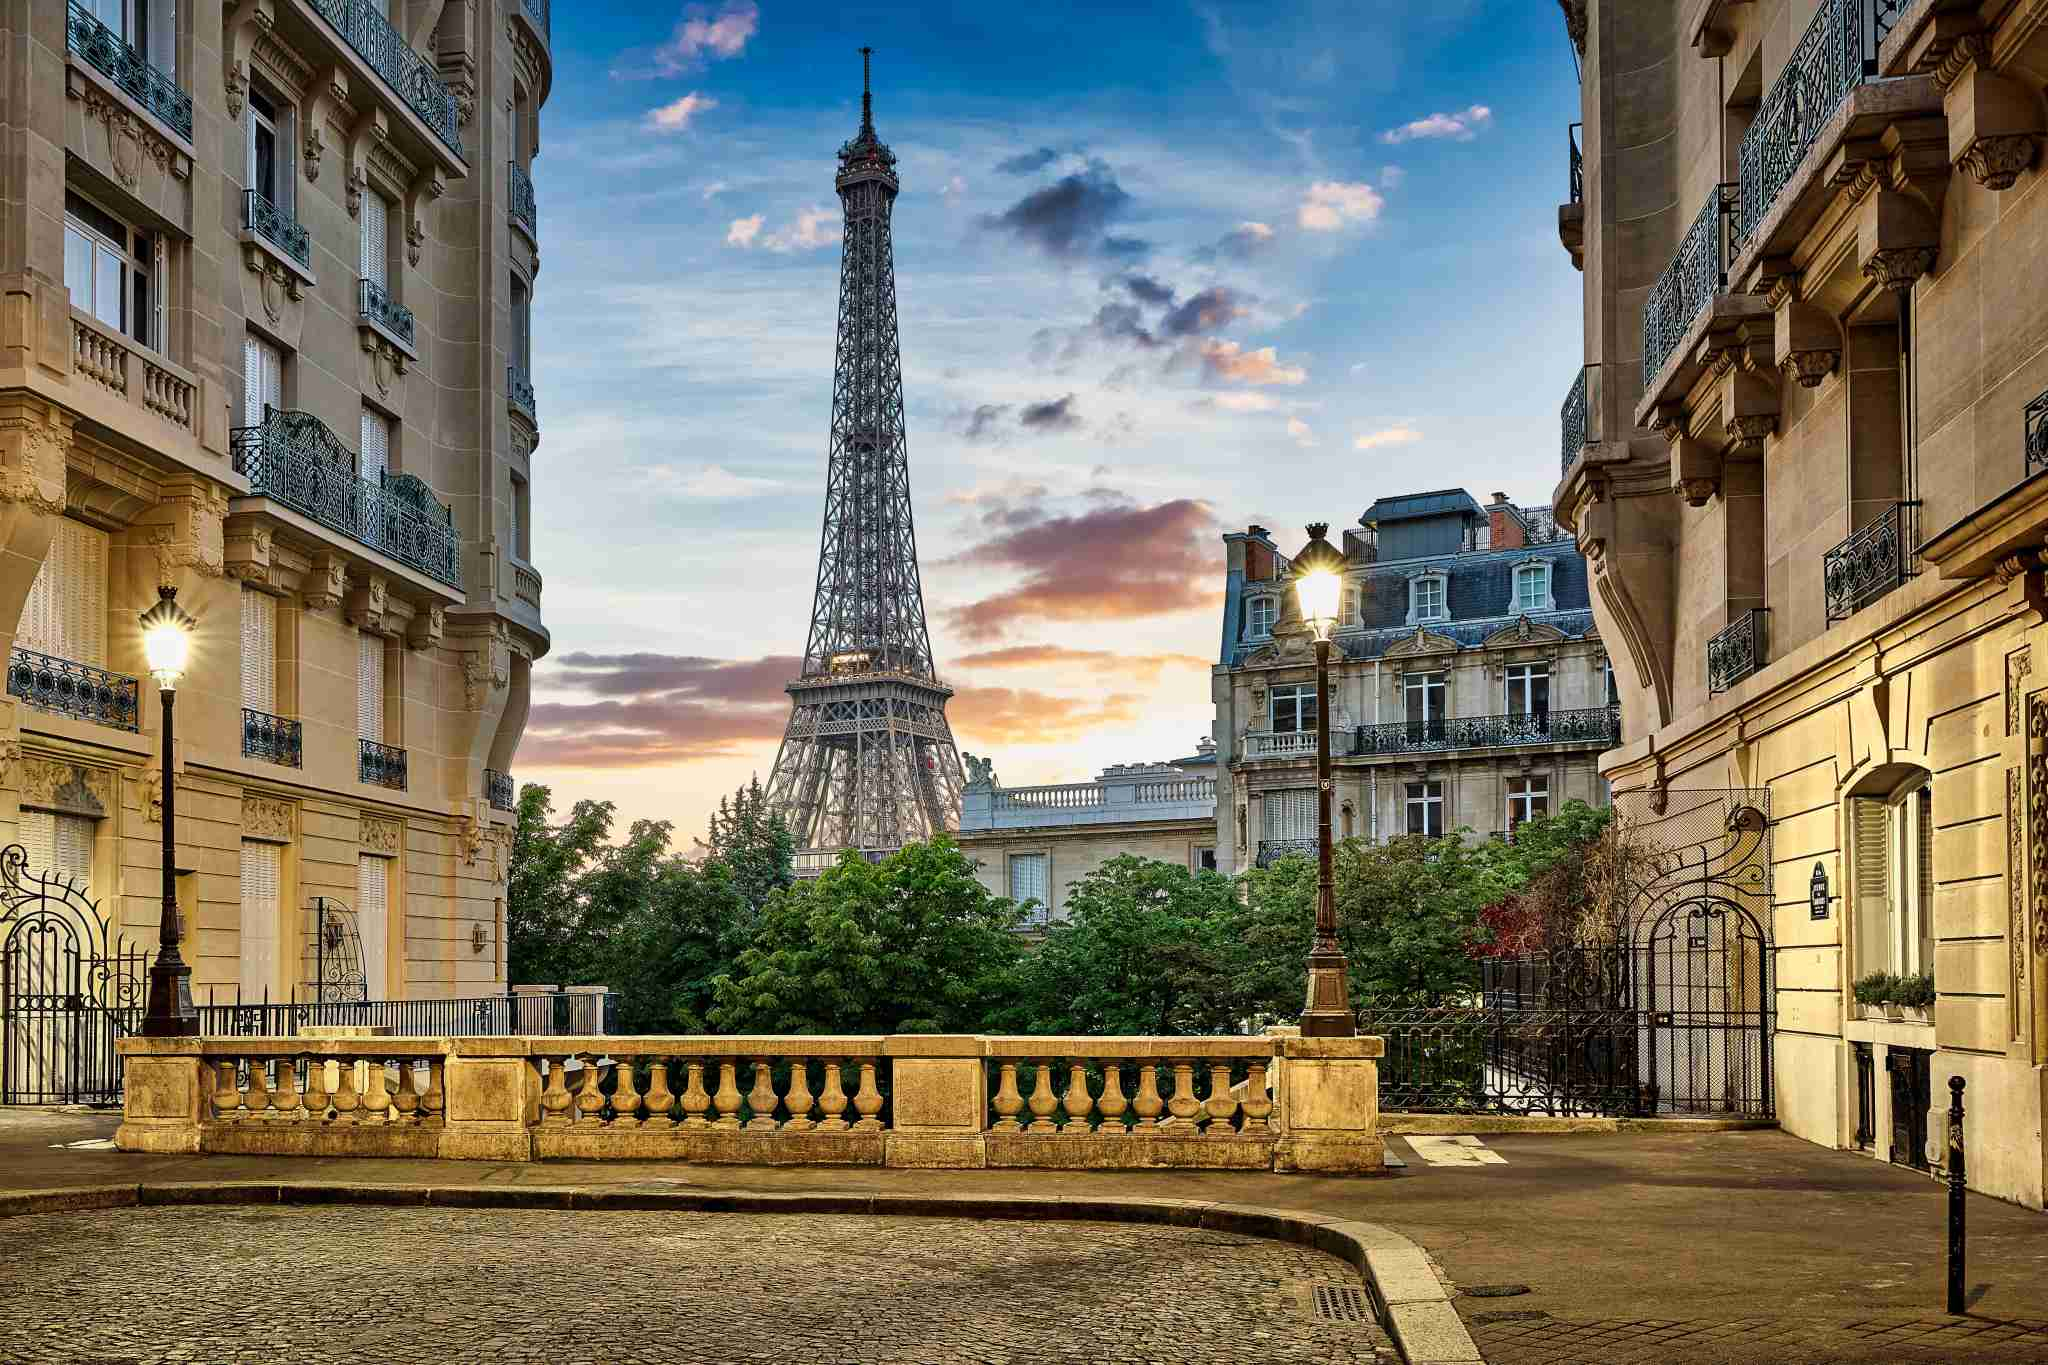 Eiffel Tower. (Photo by Harald Nachtmann/Getty Images.)